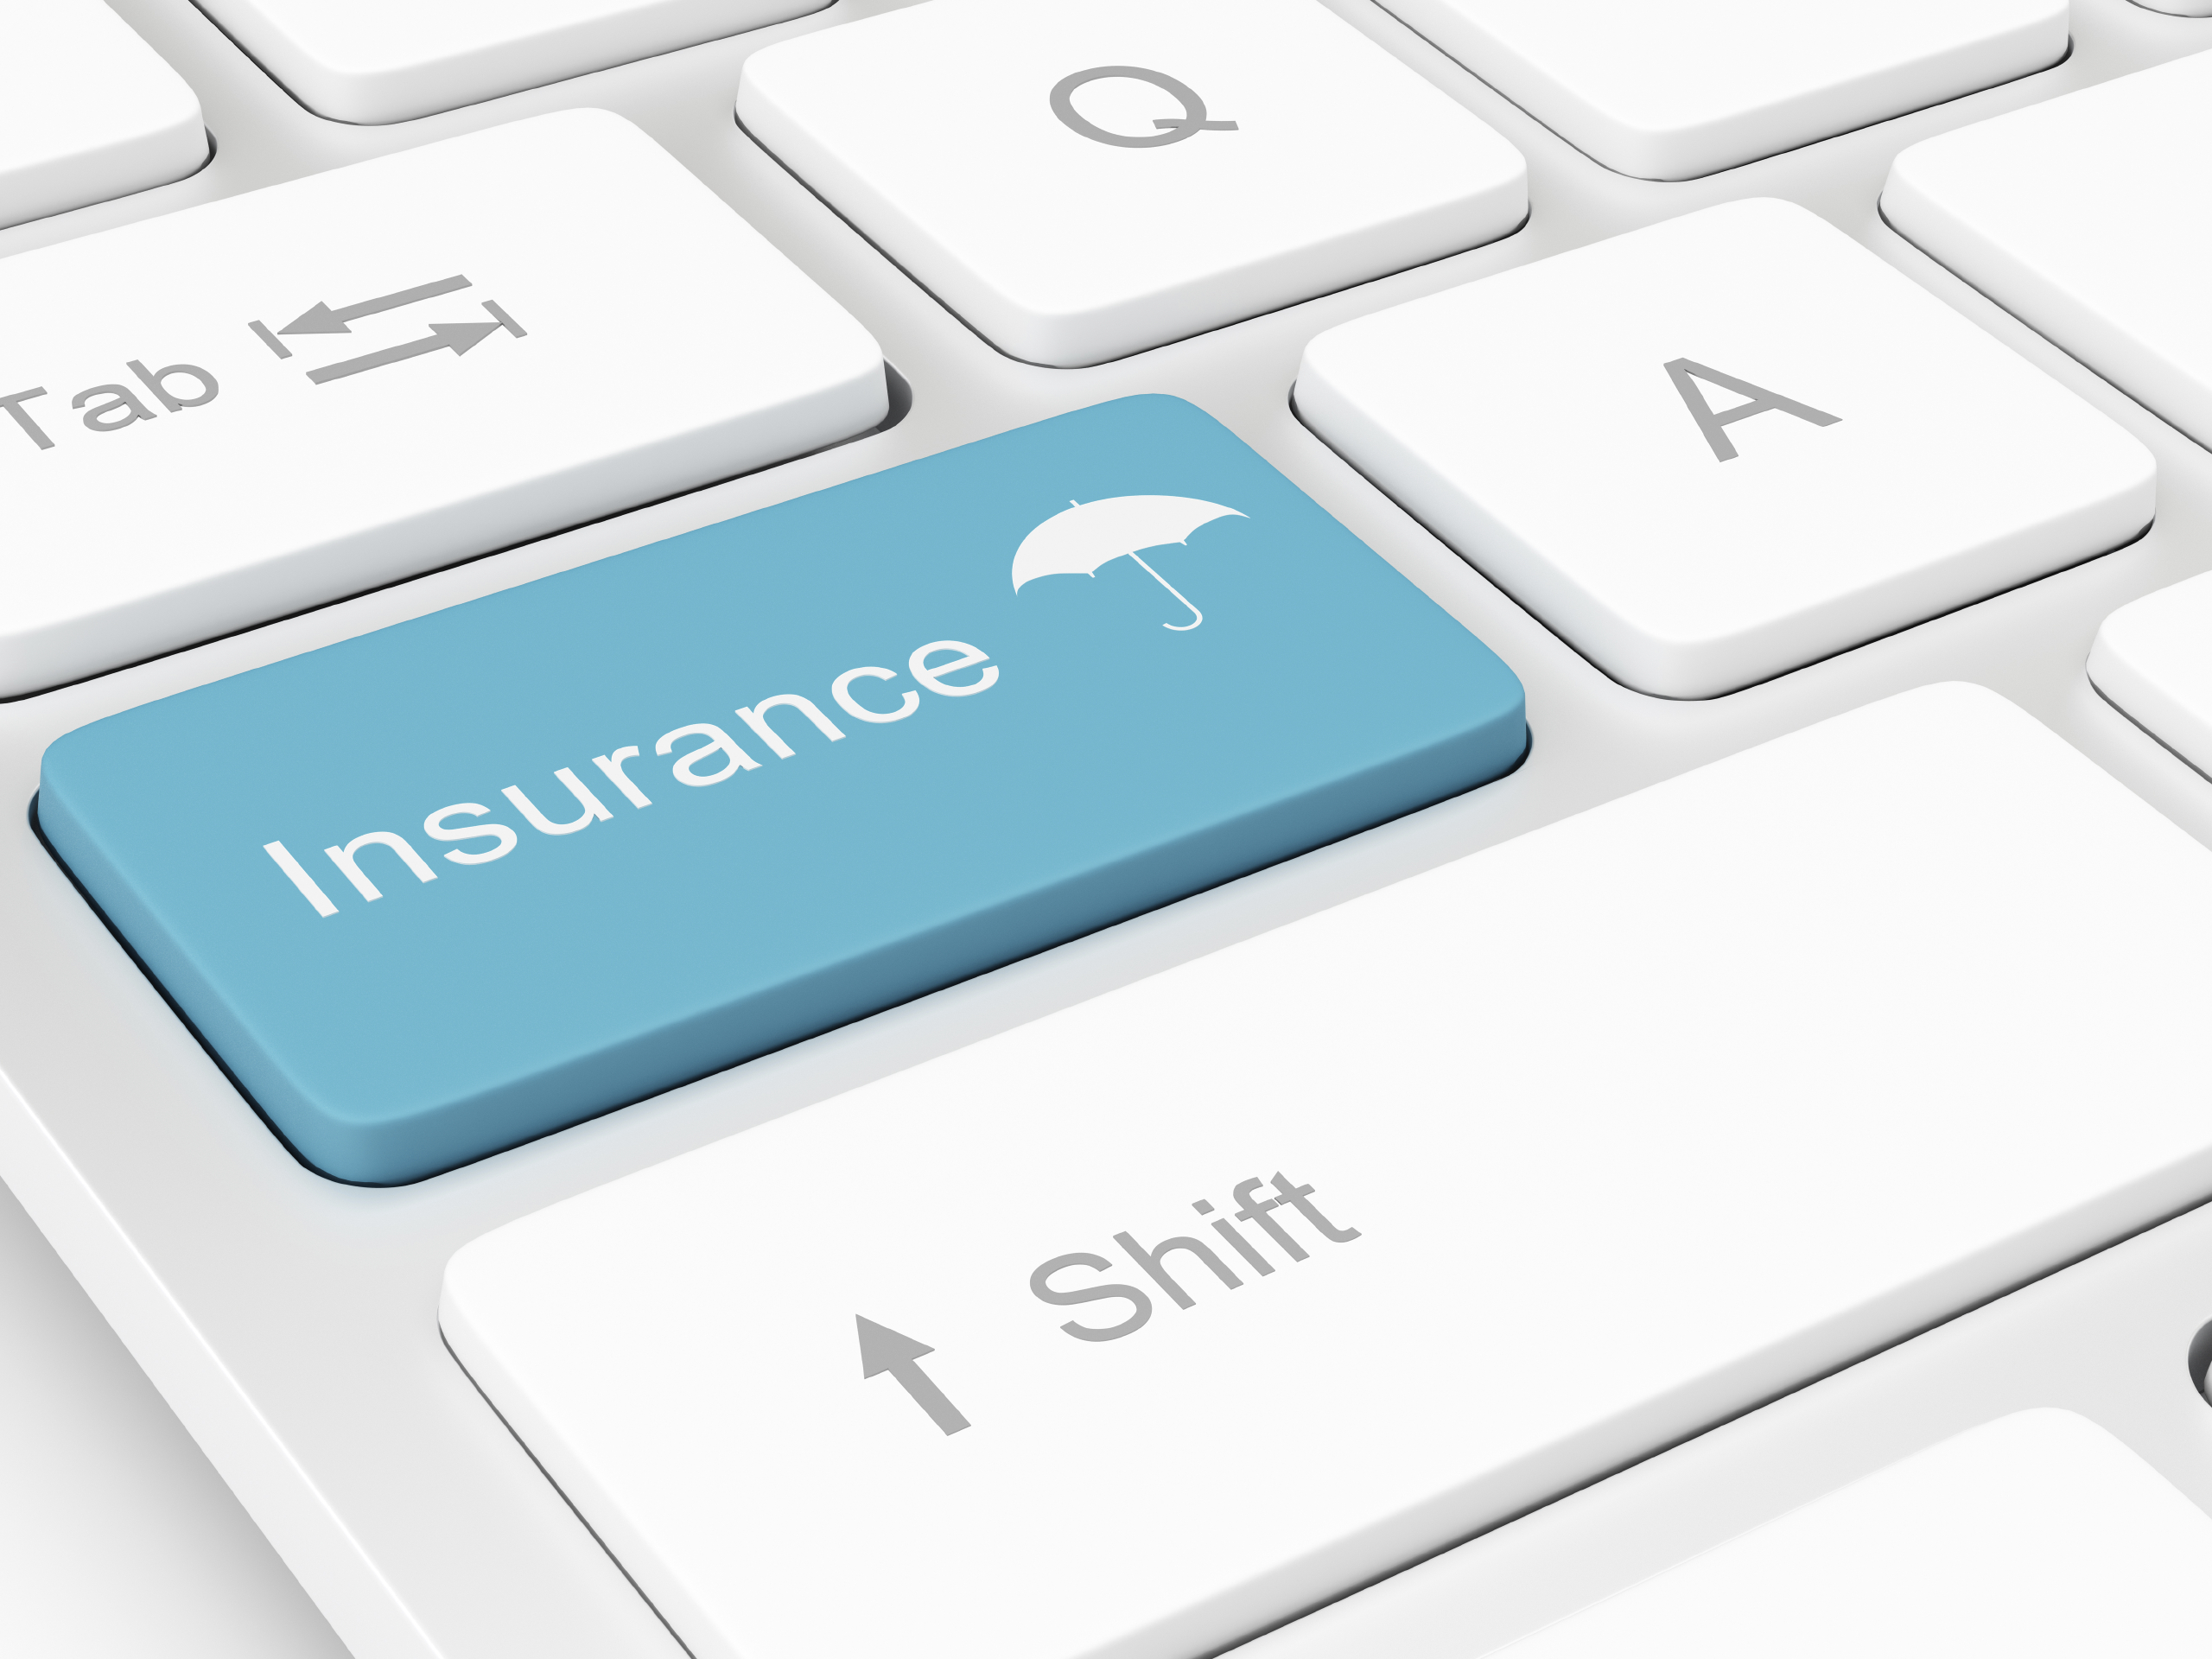 The Top 10 IT Concerns for Insurance Companies